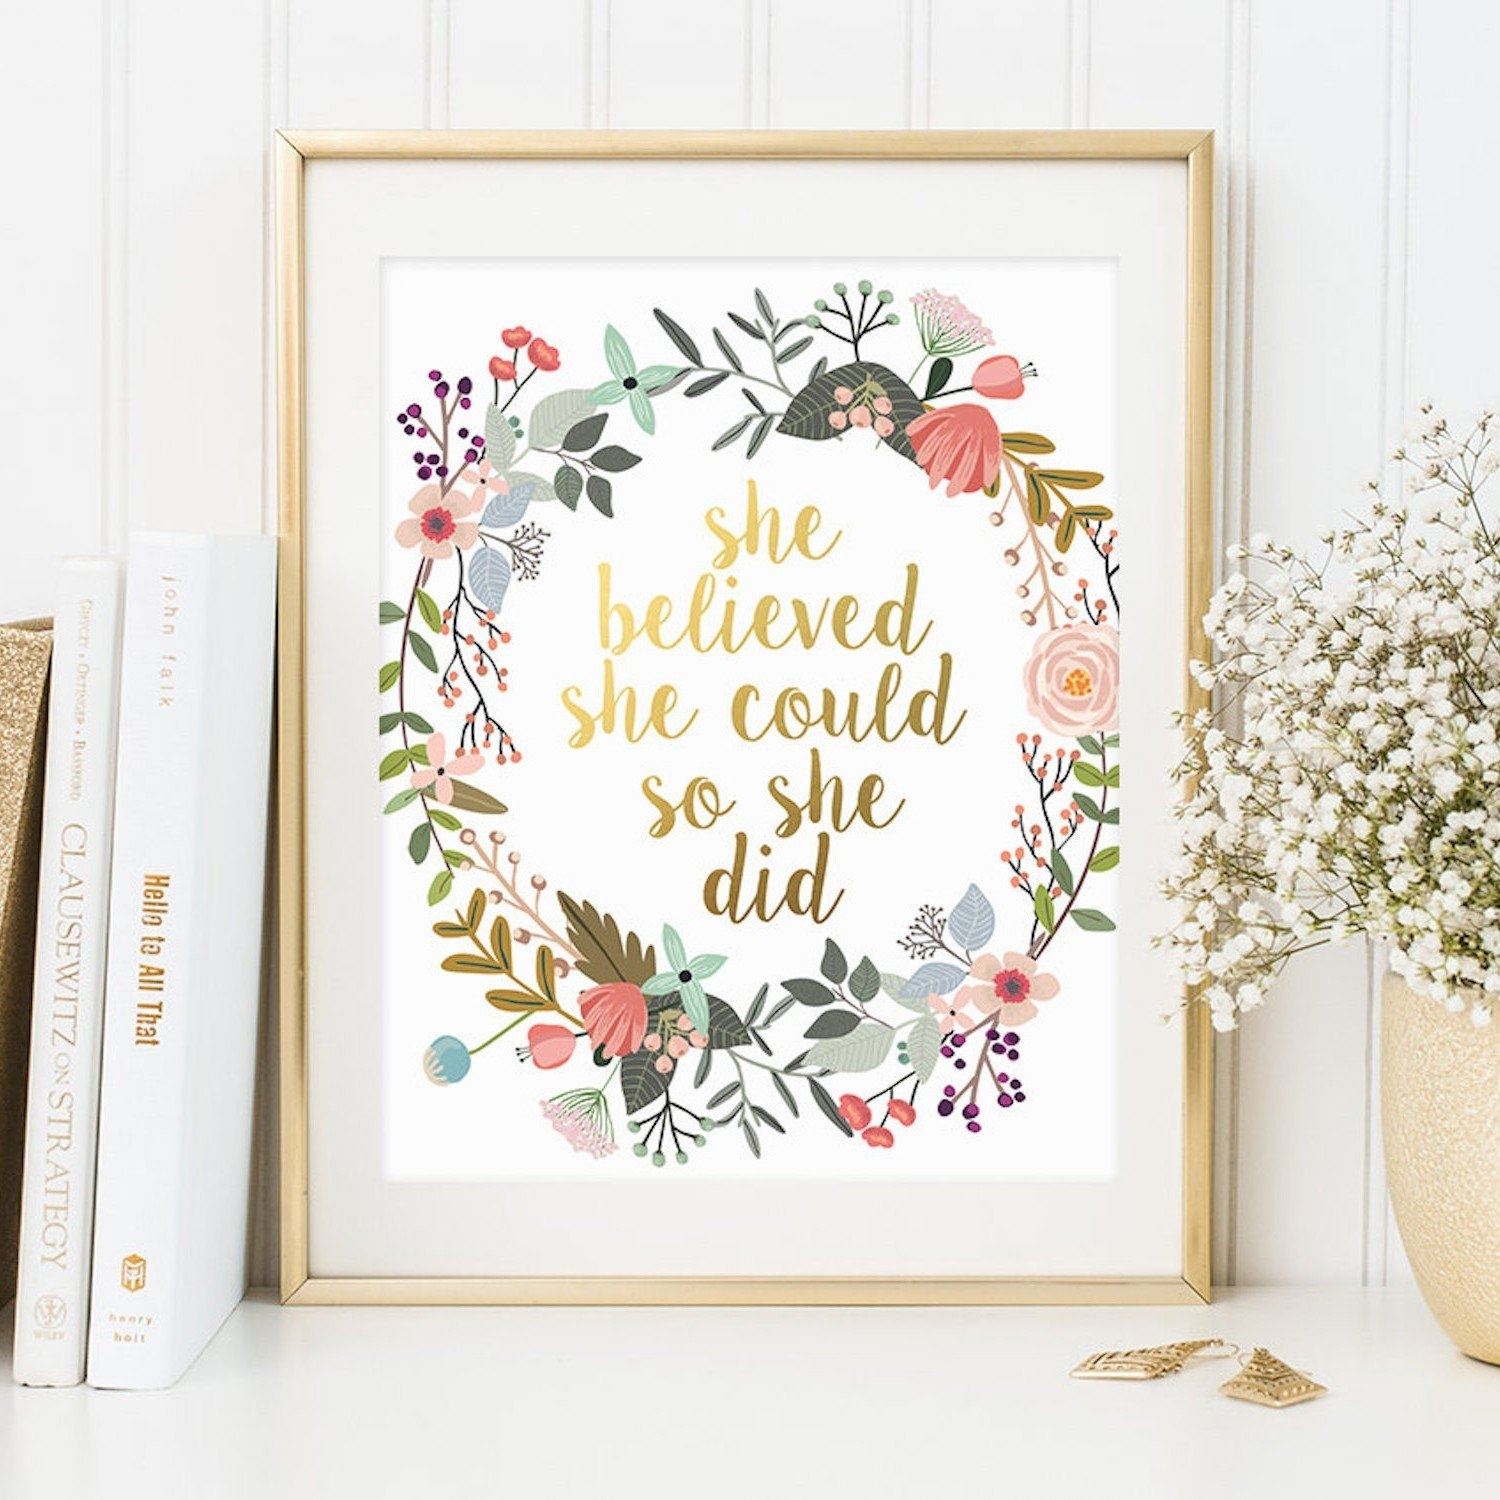 Inspirational Quote Wall Art | Popsugar Moms With Regard To Most Current Quote Wall Art (Gallery 6 of 20)